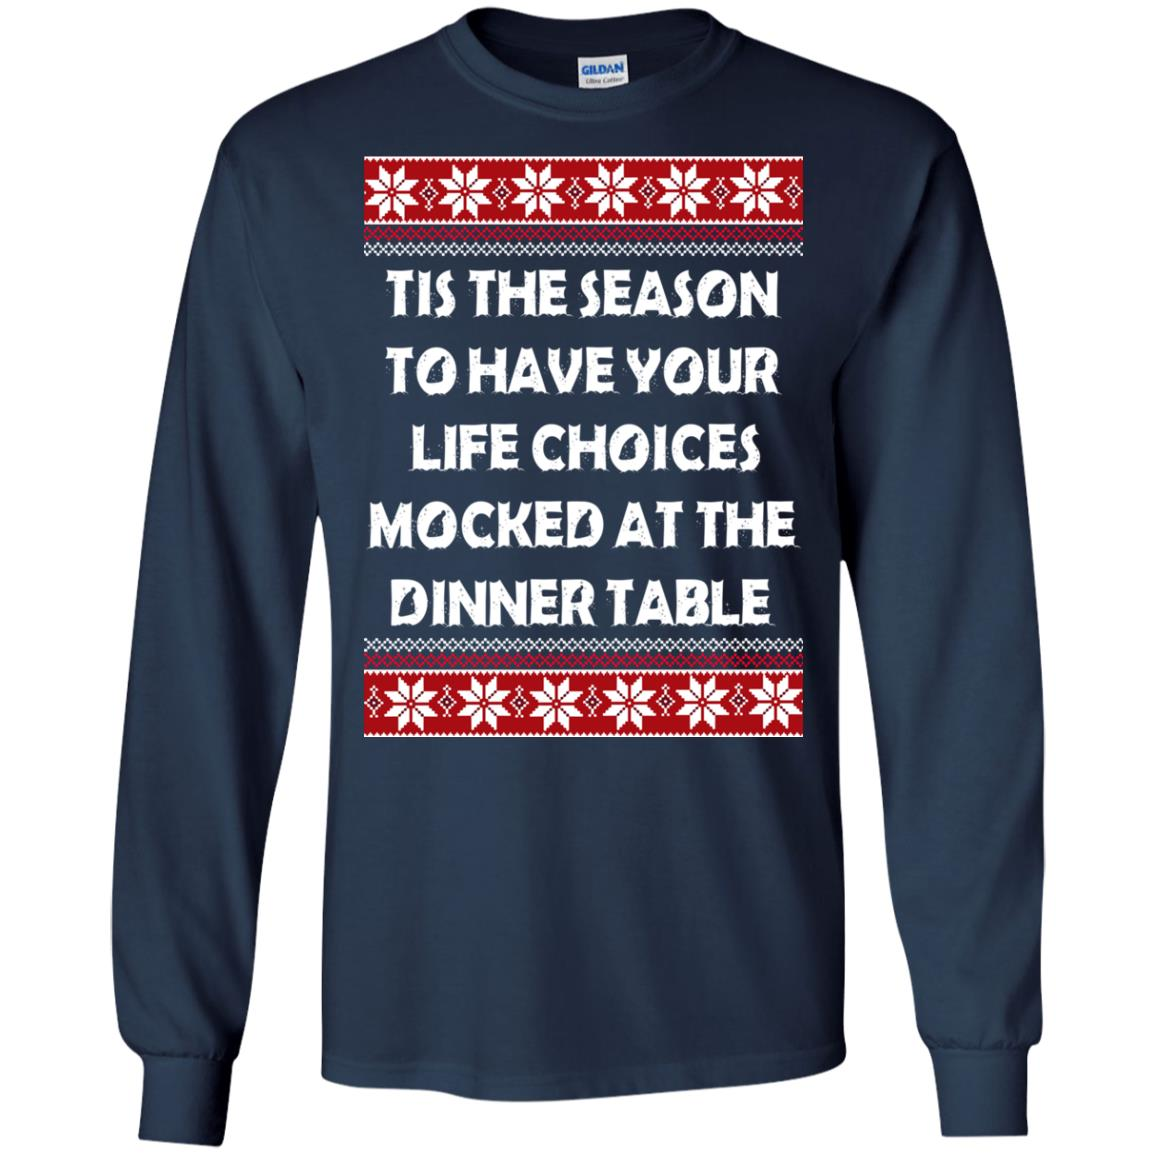 image 5893 - Tis The Season To Have Your Life Choices Mocked Christmas Sweater, Hoodie